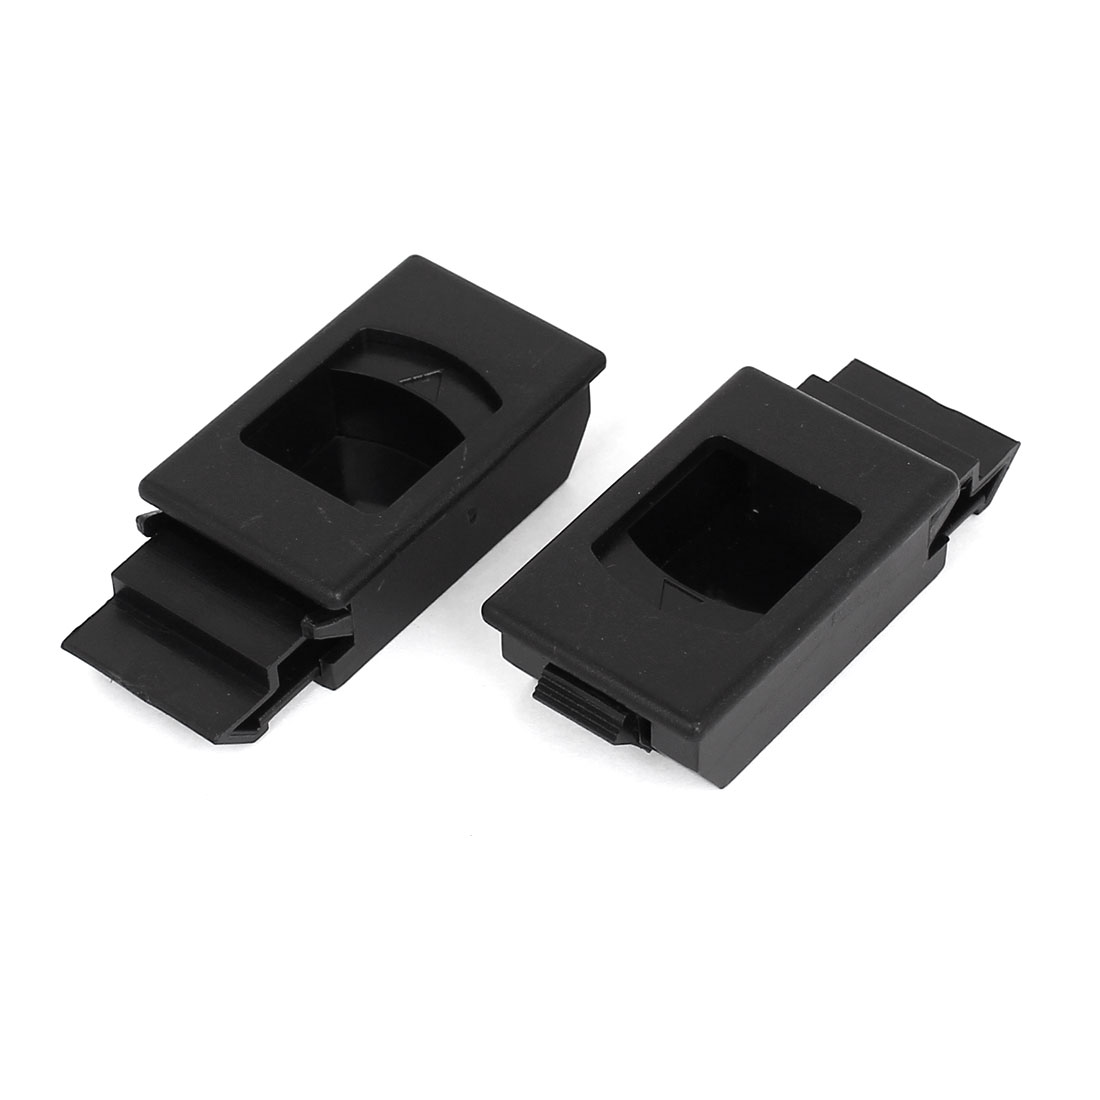 Window Door Cabinet Lock Black Plastic Recessed Flush Sliding Pull Latch 2pcs